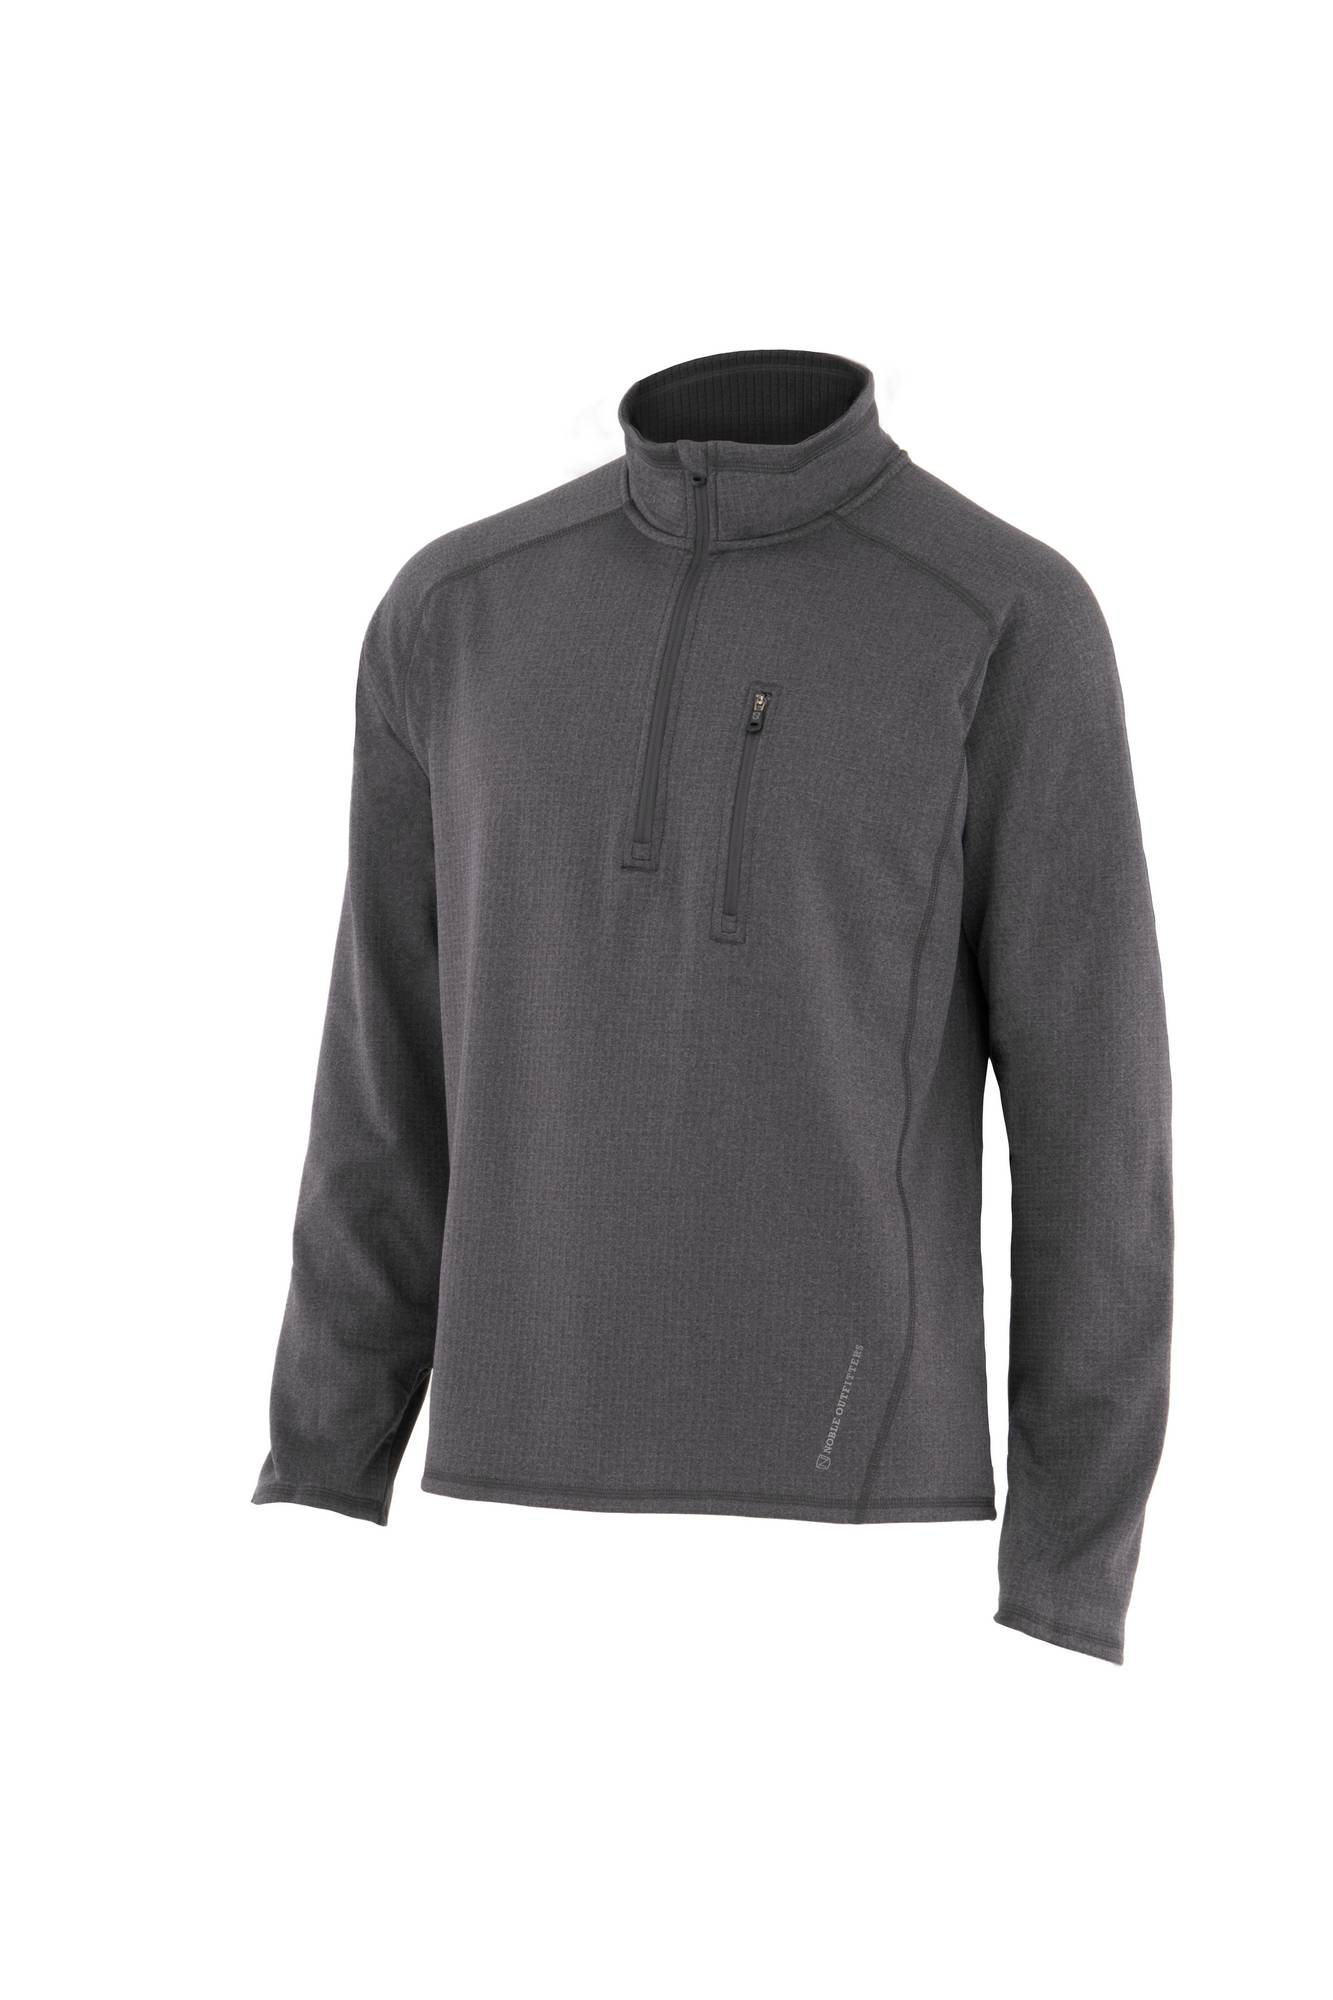 Noble Outfitters Performance 1/4 Zip Mock Shirt - Men